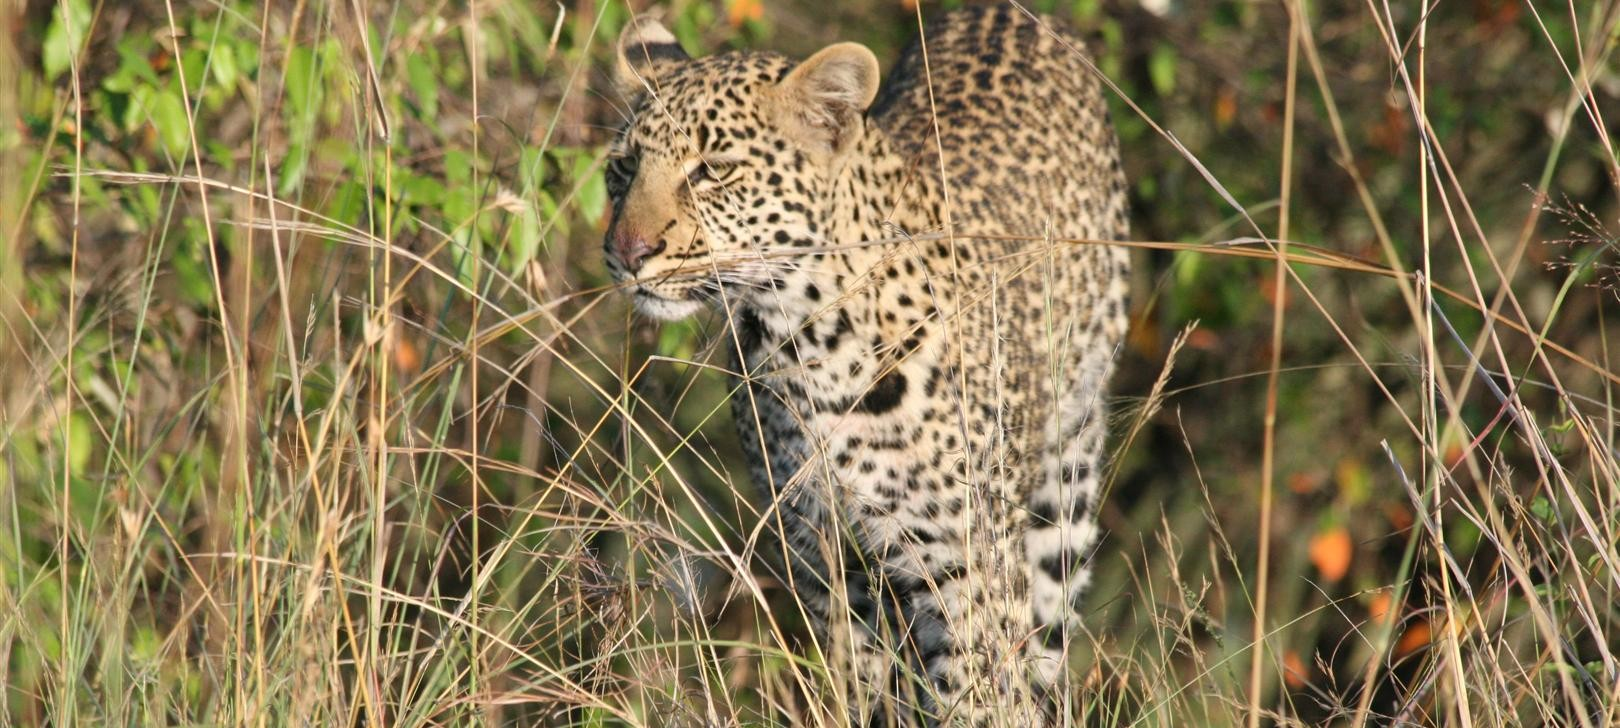 leopard near Private Camp (photo by Steward Shang)